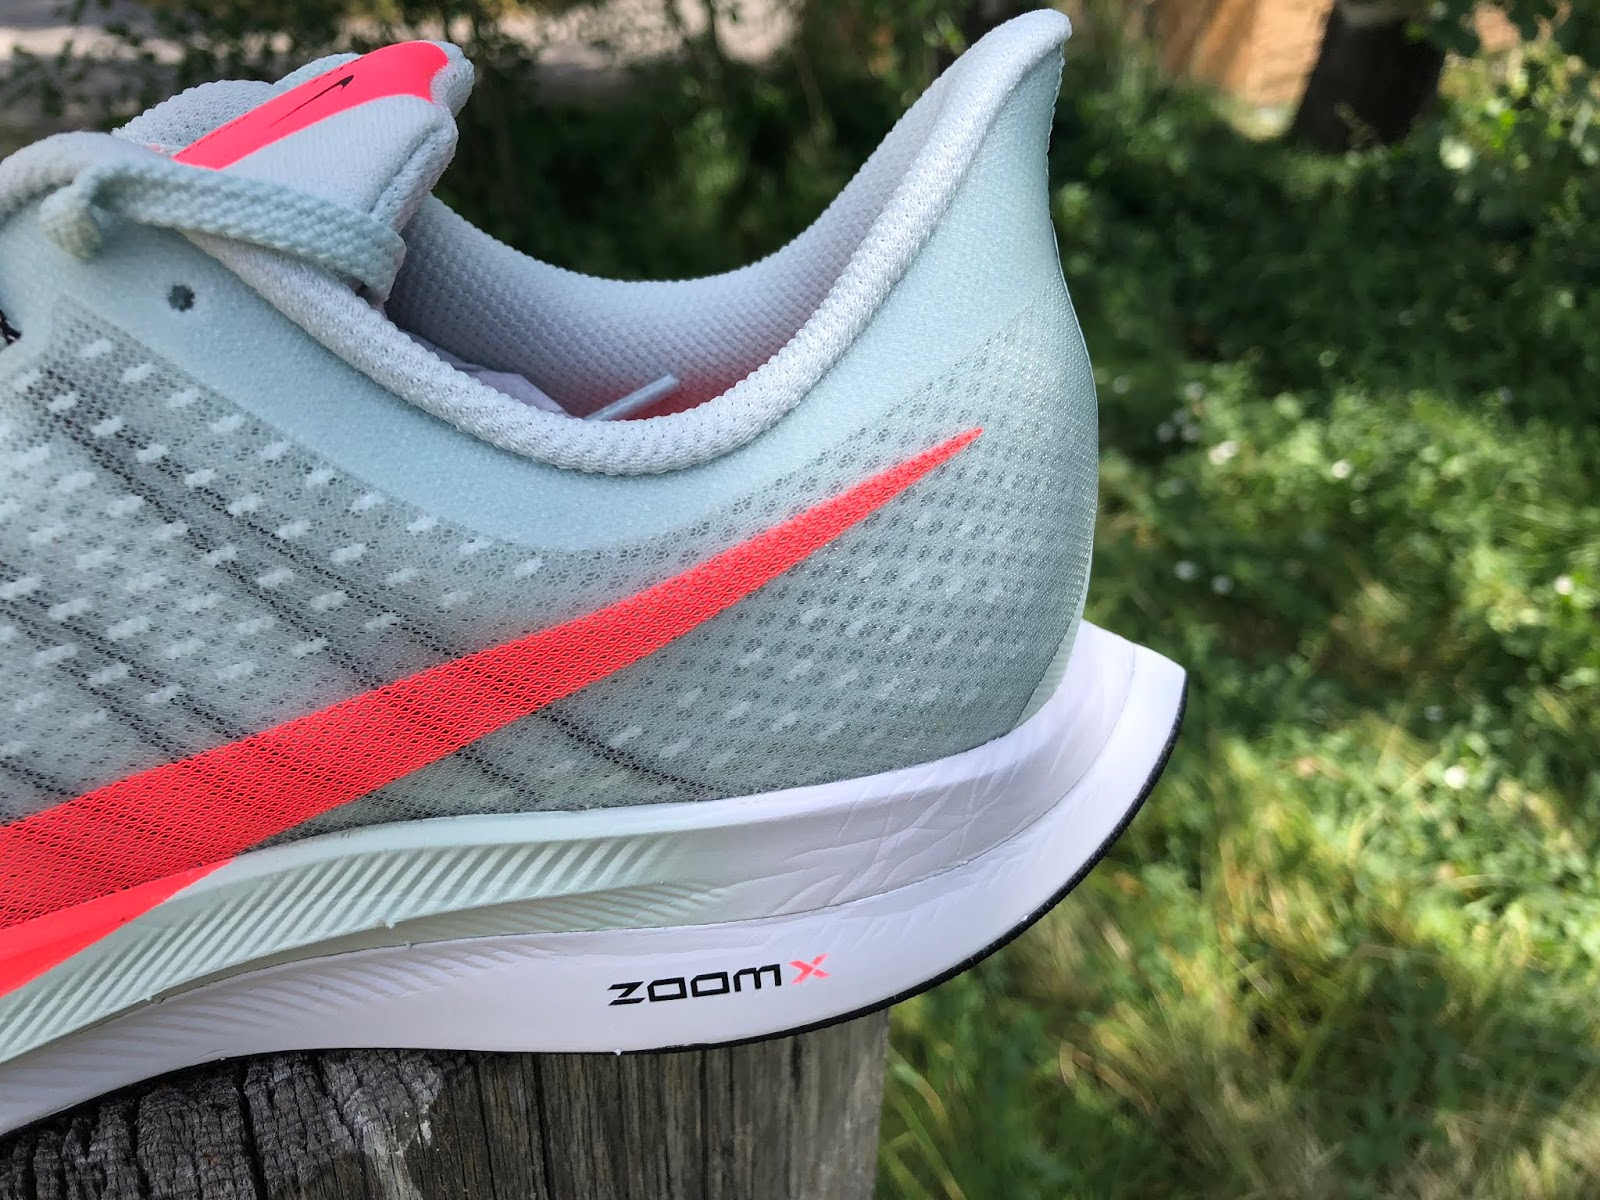 521cf9bd807e3 Sam  The Zoom X midsole is the star feature. Nike tells us the entire  midsole is Zoom X which we understand is a PEBA based foam and not the  usual EVA.